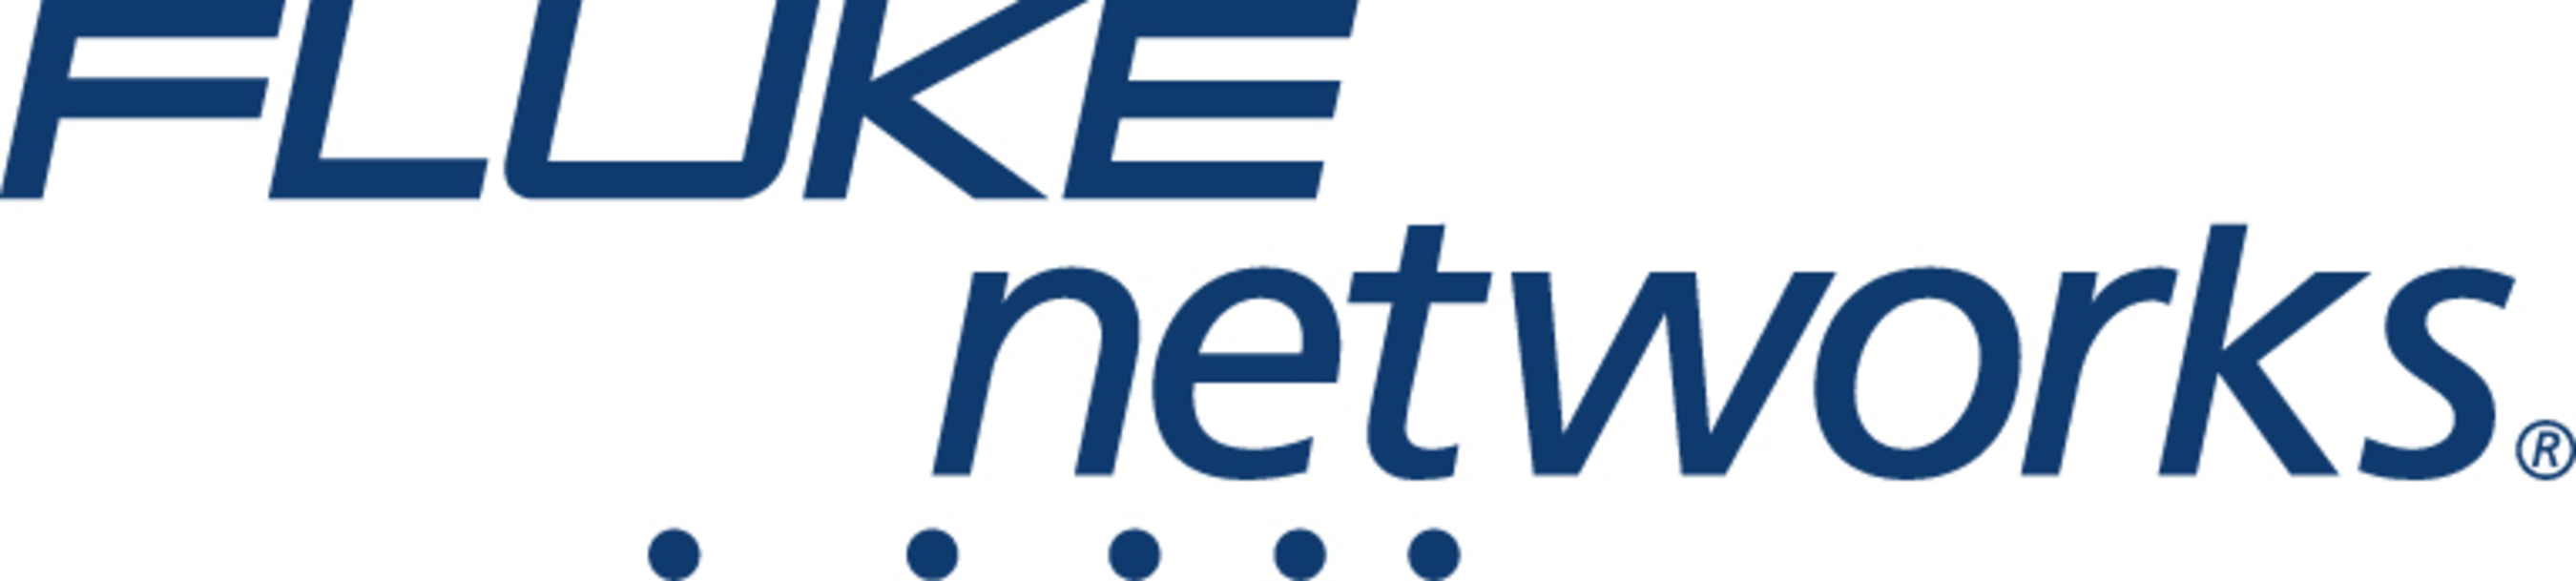 Fluke Networks Announces New LinkWare Live Capabilities to Improve Test Device Management, Configuration and Tracking